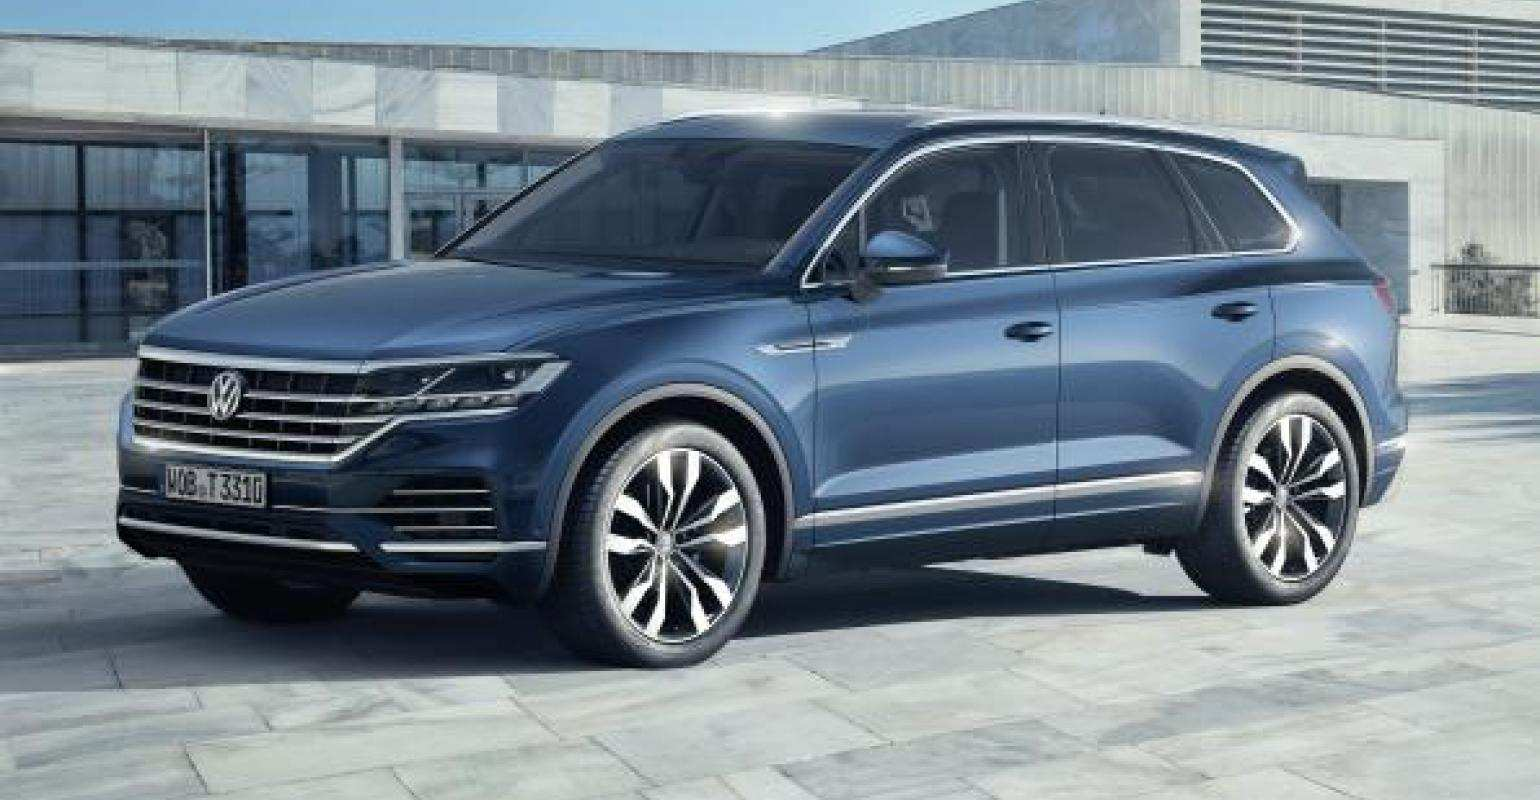 81 Best Review New Volkswagen Touareg 2020 Redesign by New Volkswagen Touareg 2020